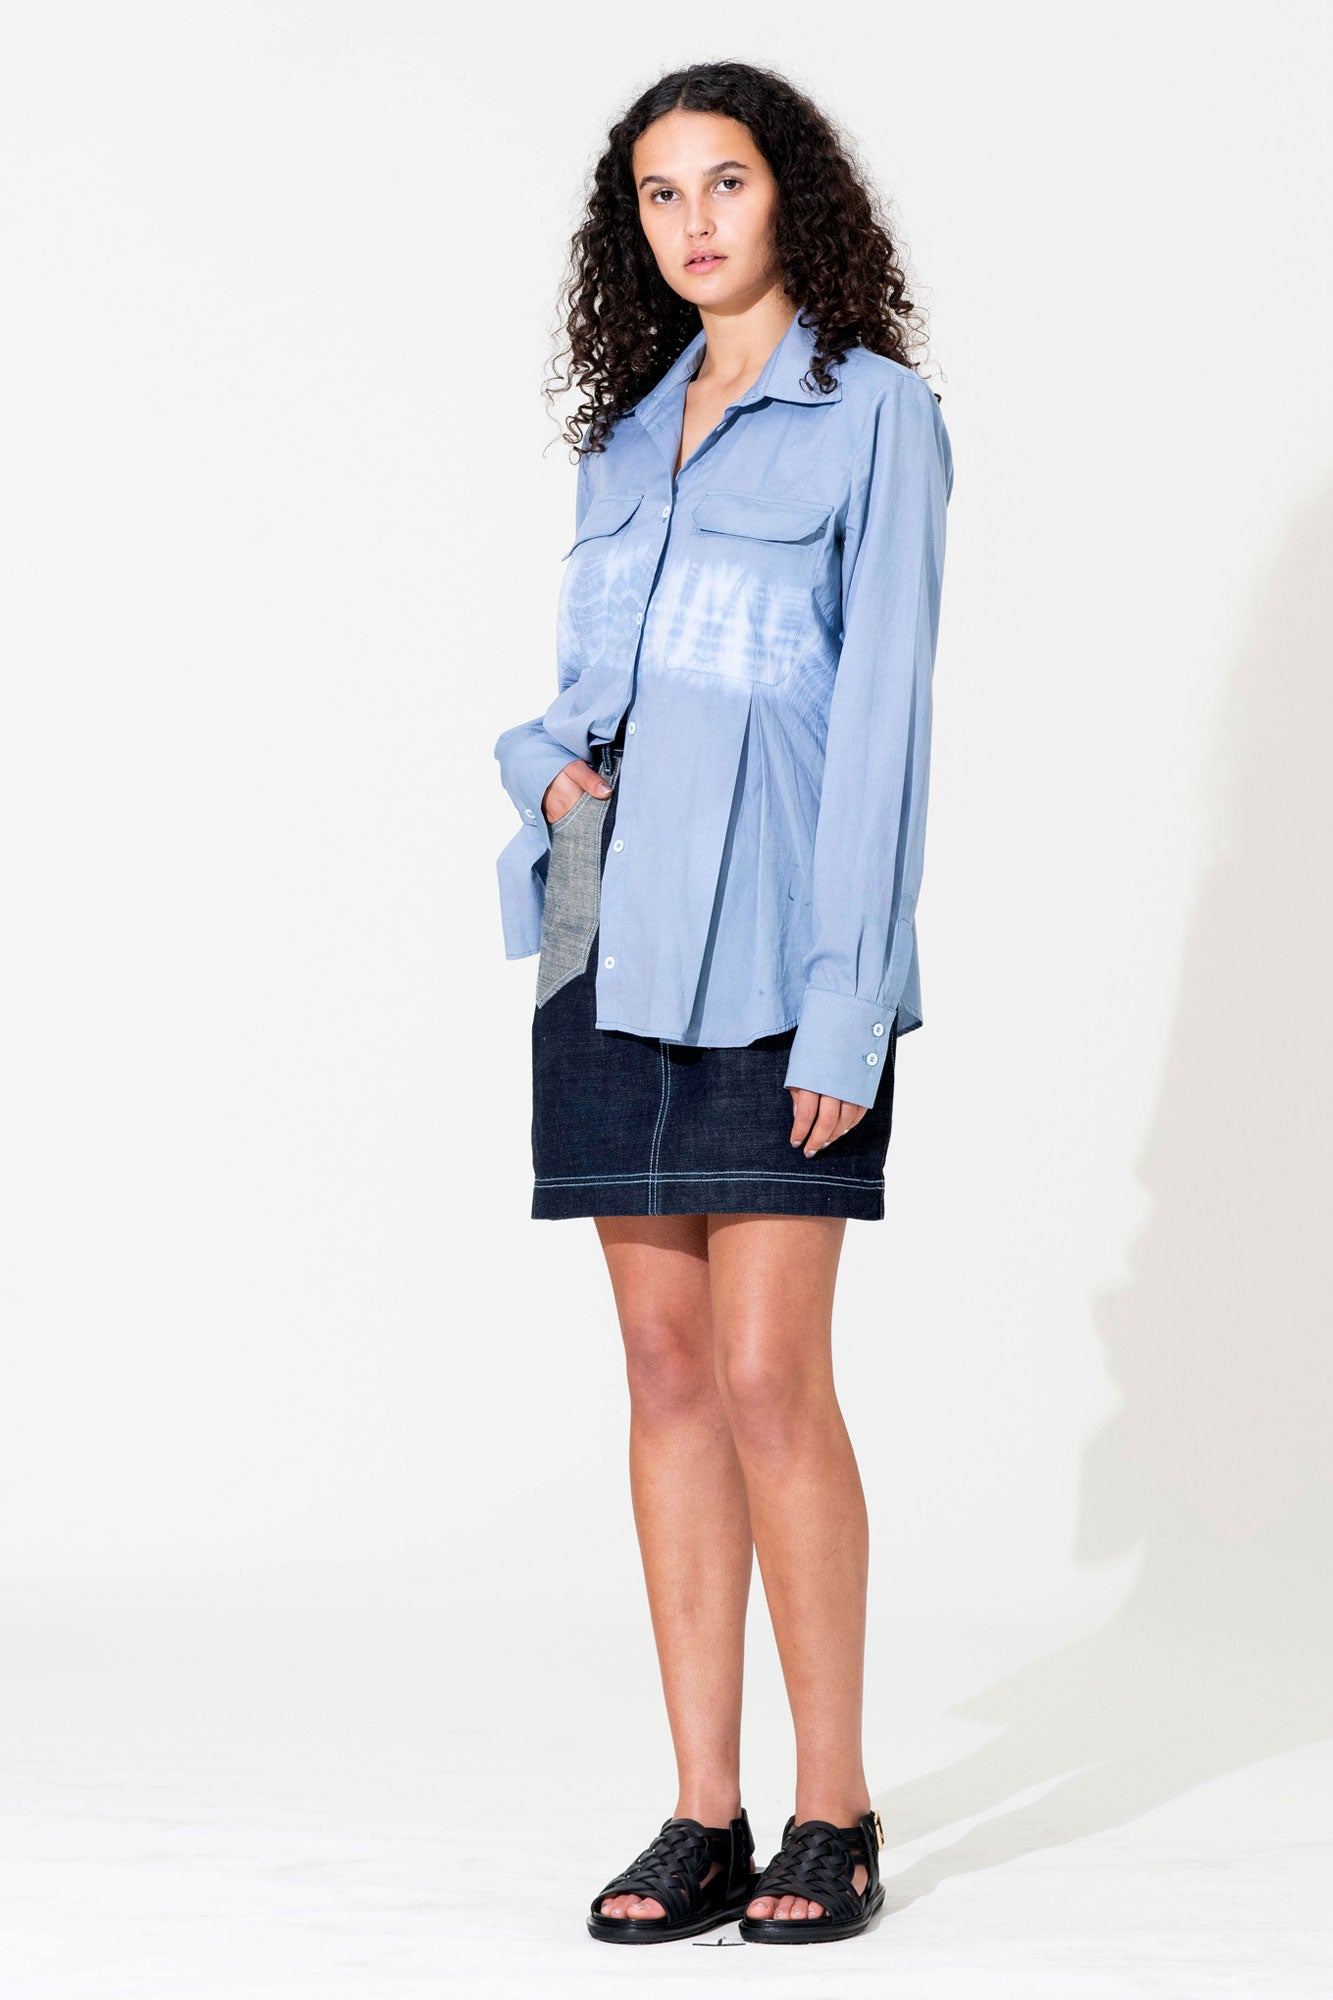 Pleat Tie-Dye Shirt - Blue